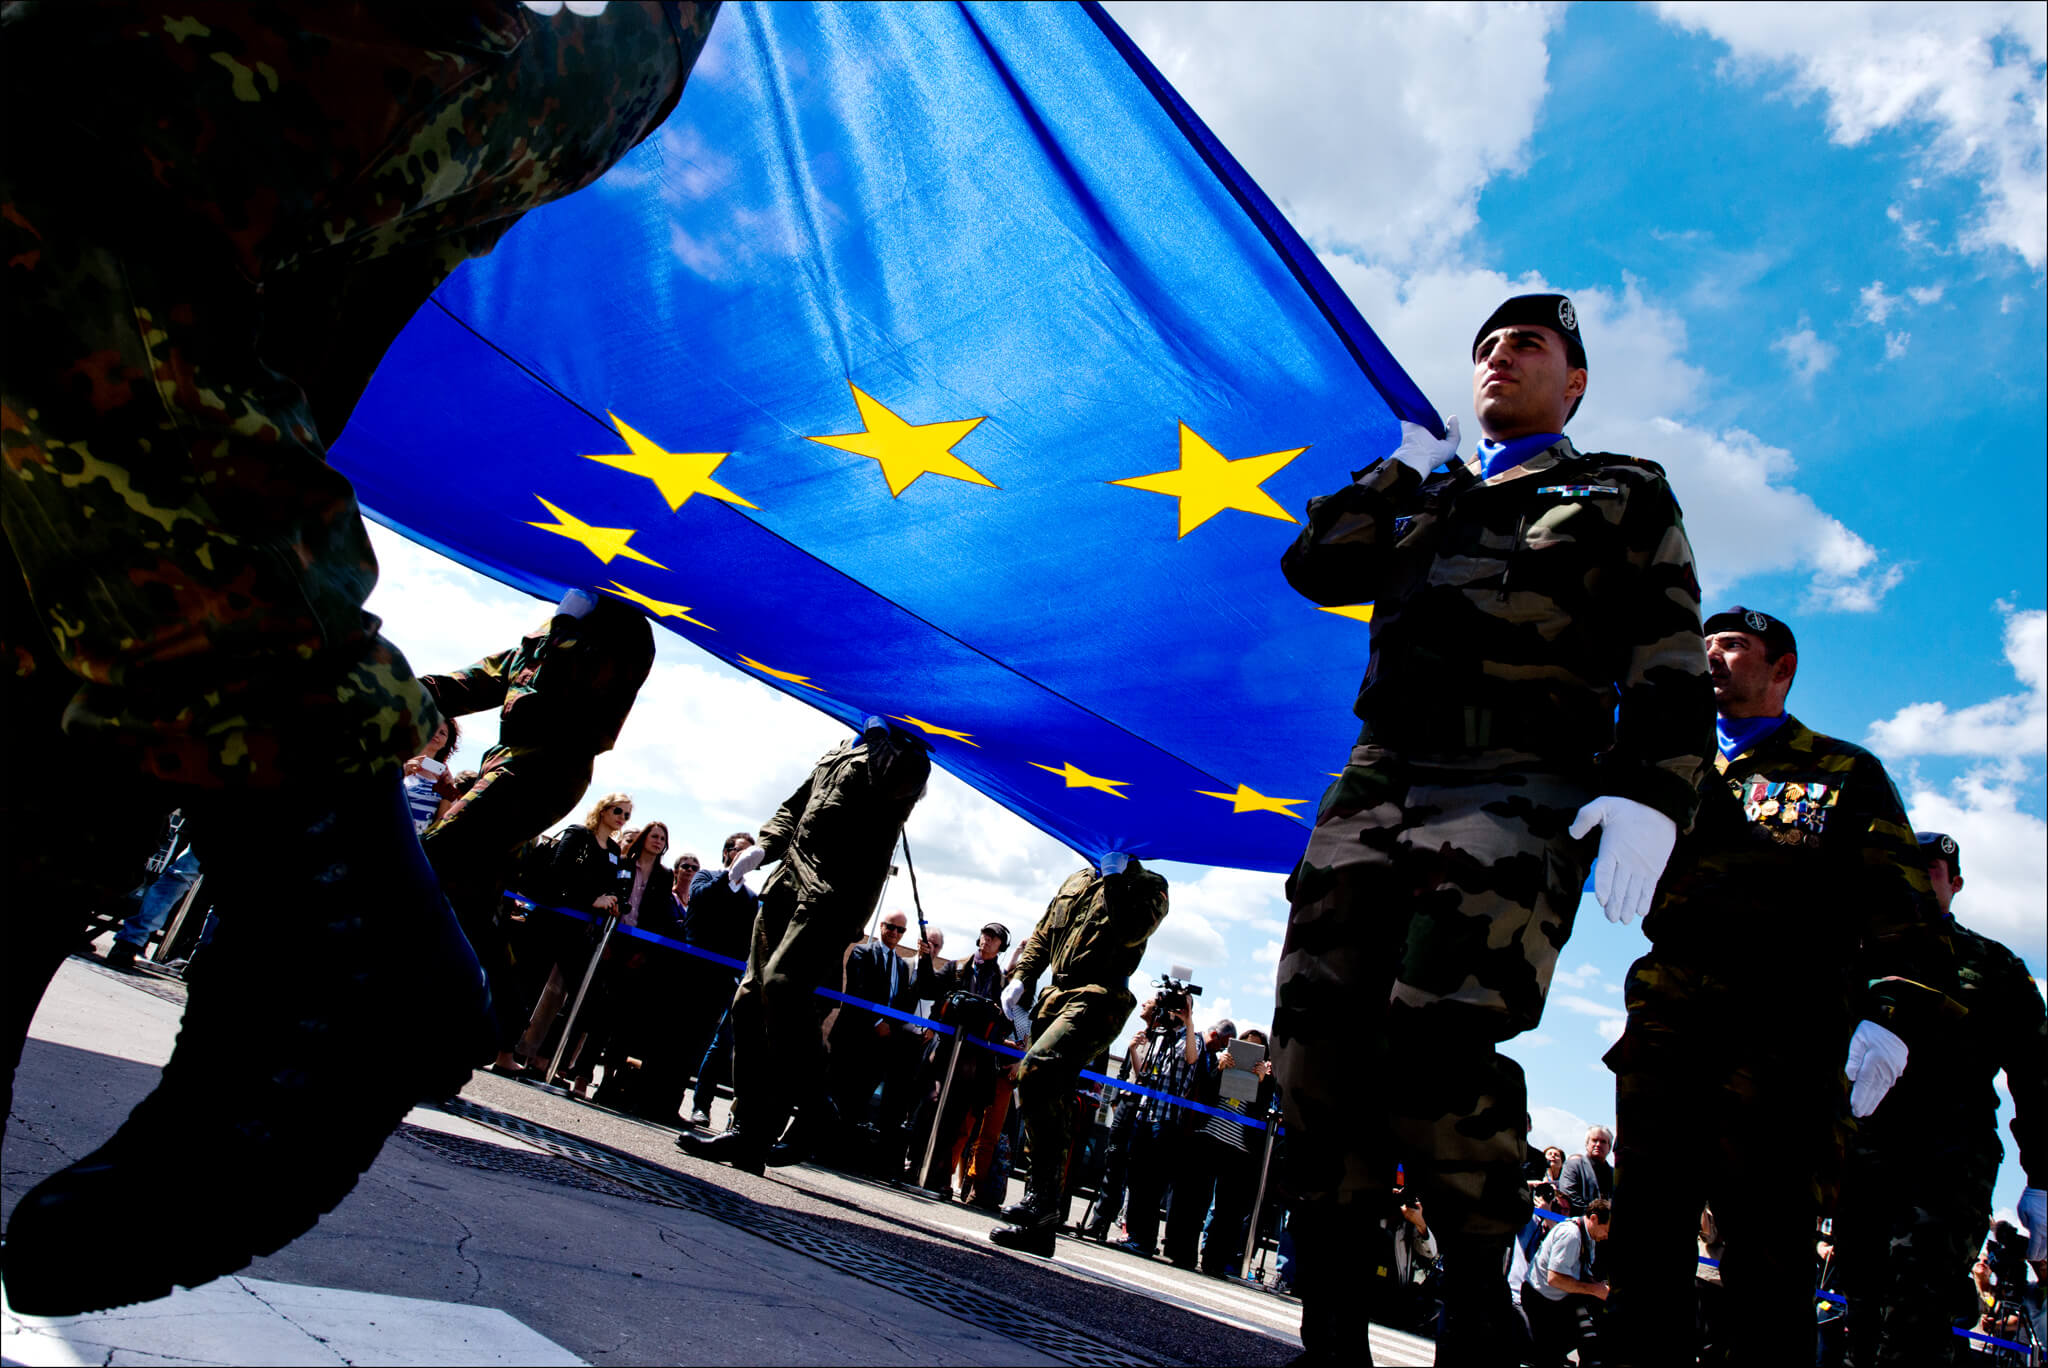 Soldaten dragen de EU vlag. © European Parliament / Flickr.